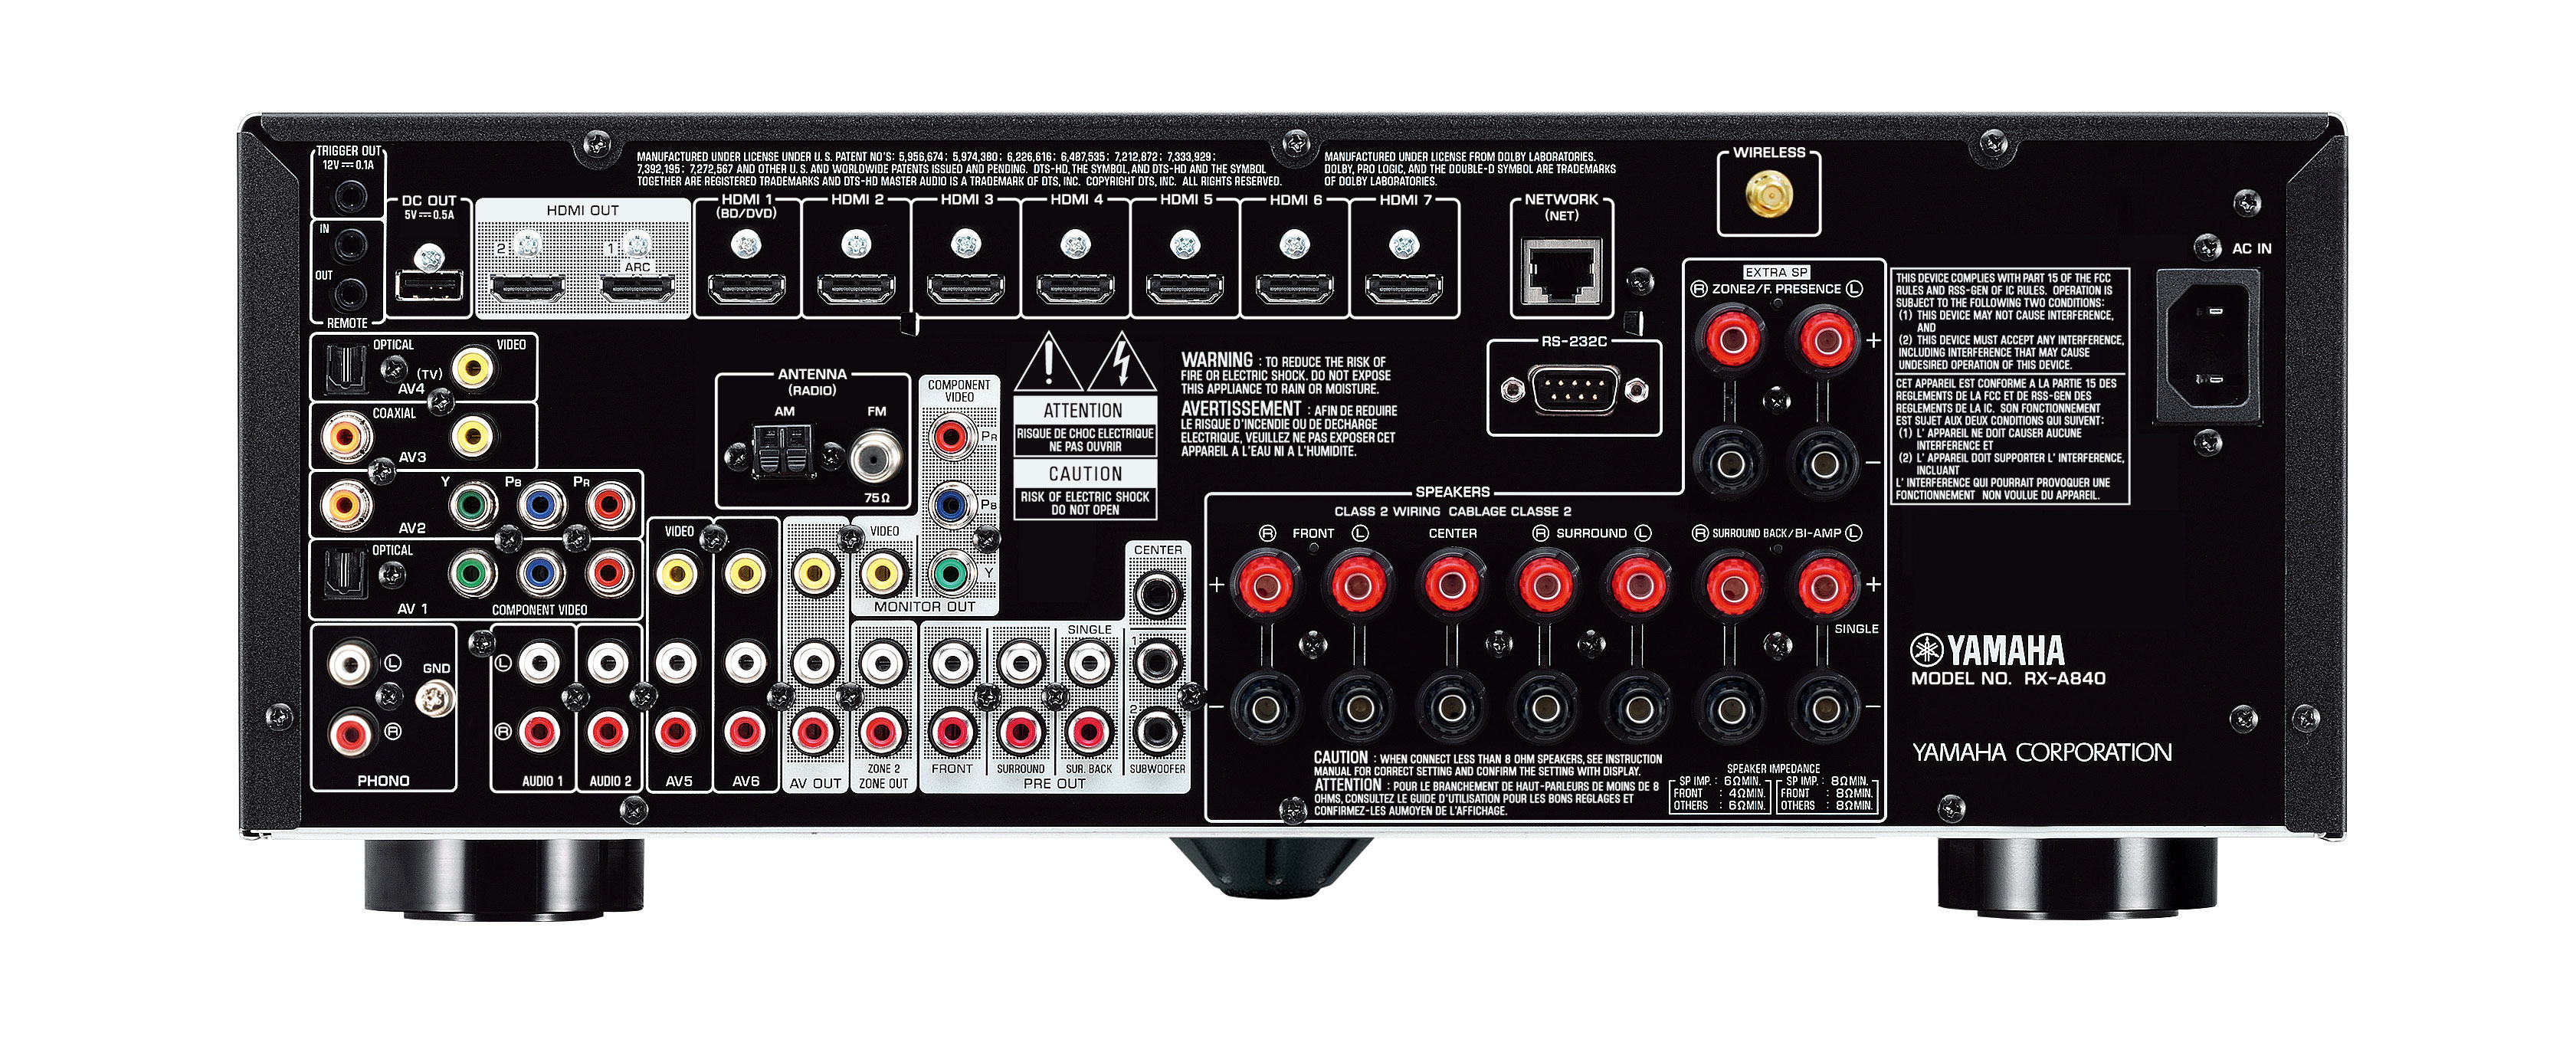 Where To Buy Yamaha Receivers In Usa